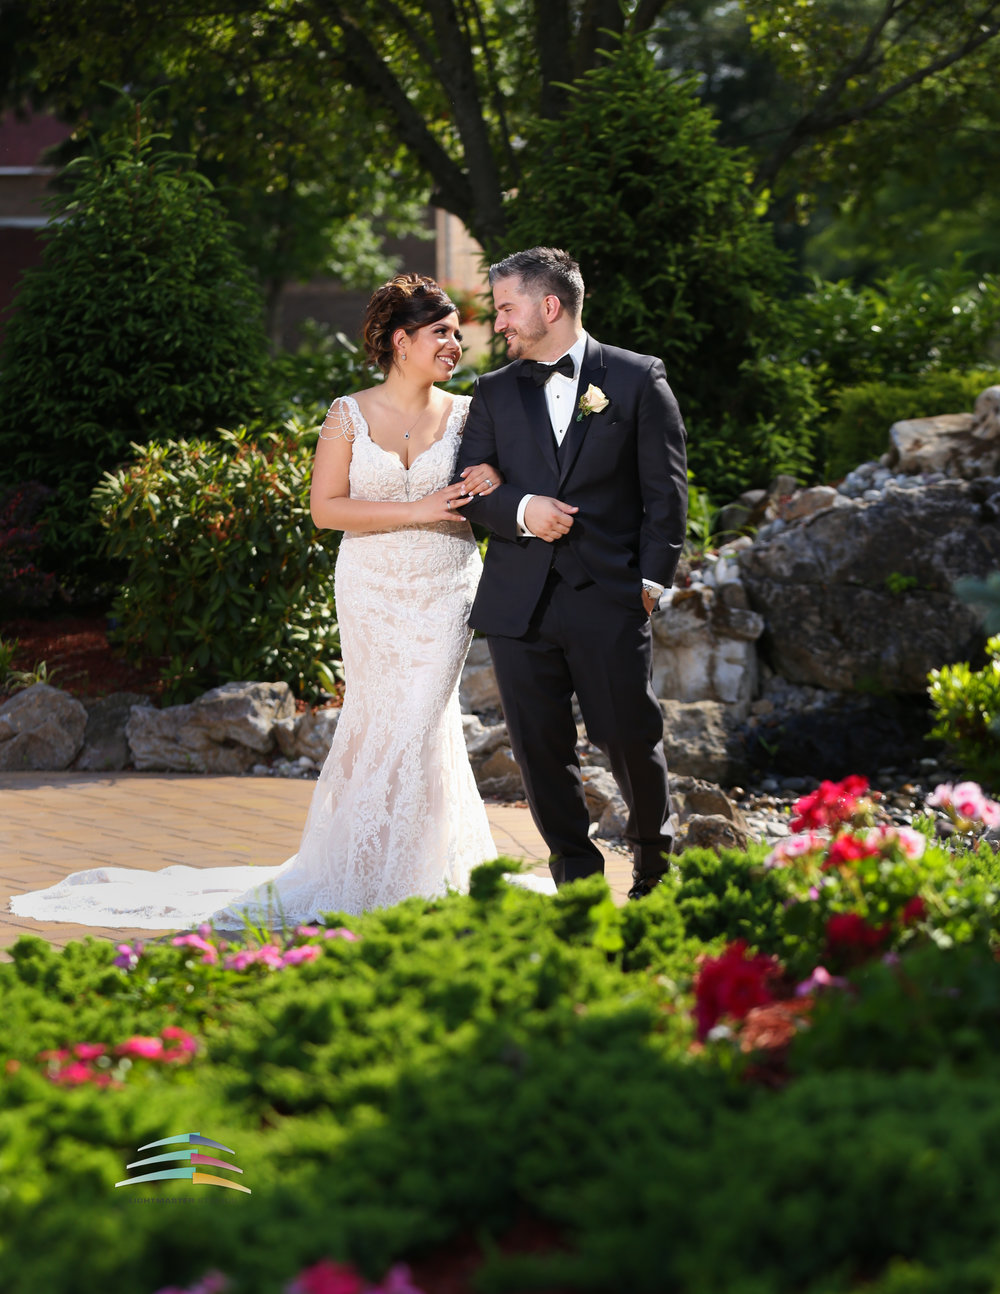 Lightmaster-studios-wedding-couple-outdoor-wedding-water-fountain-east-hanover-manor-new-jersey-mermaid-wedding-dress-red-flowers-pink-flowers